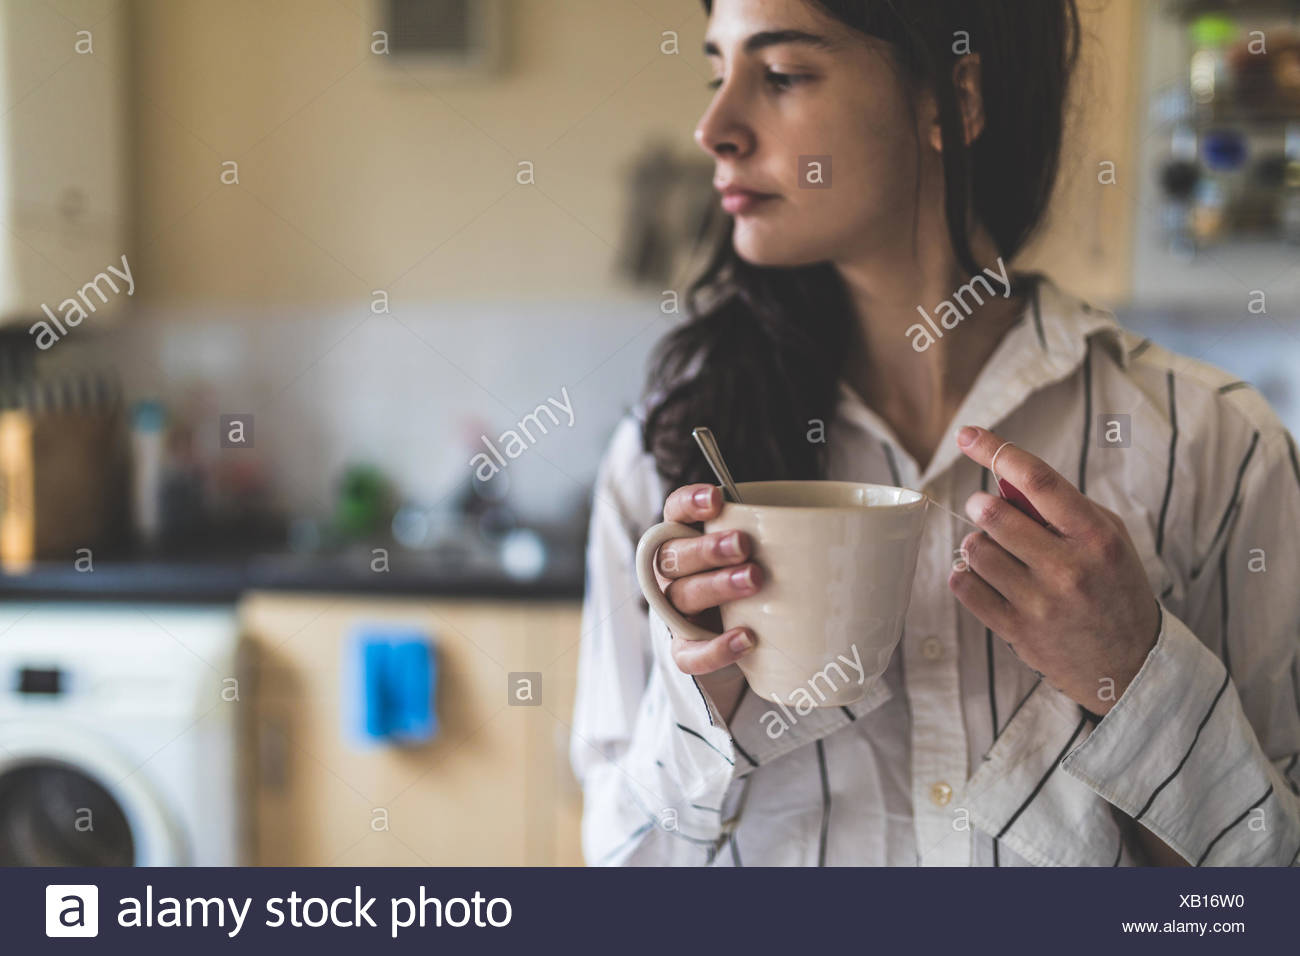 Young woman at home, wearing pyjamas, holding coffee cup - Stock Image